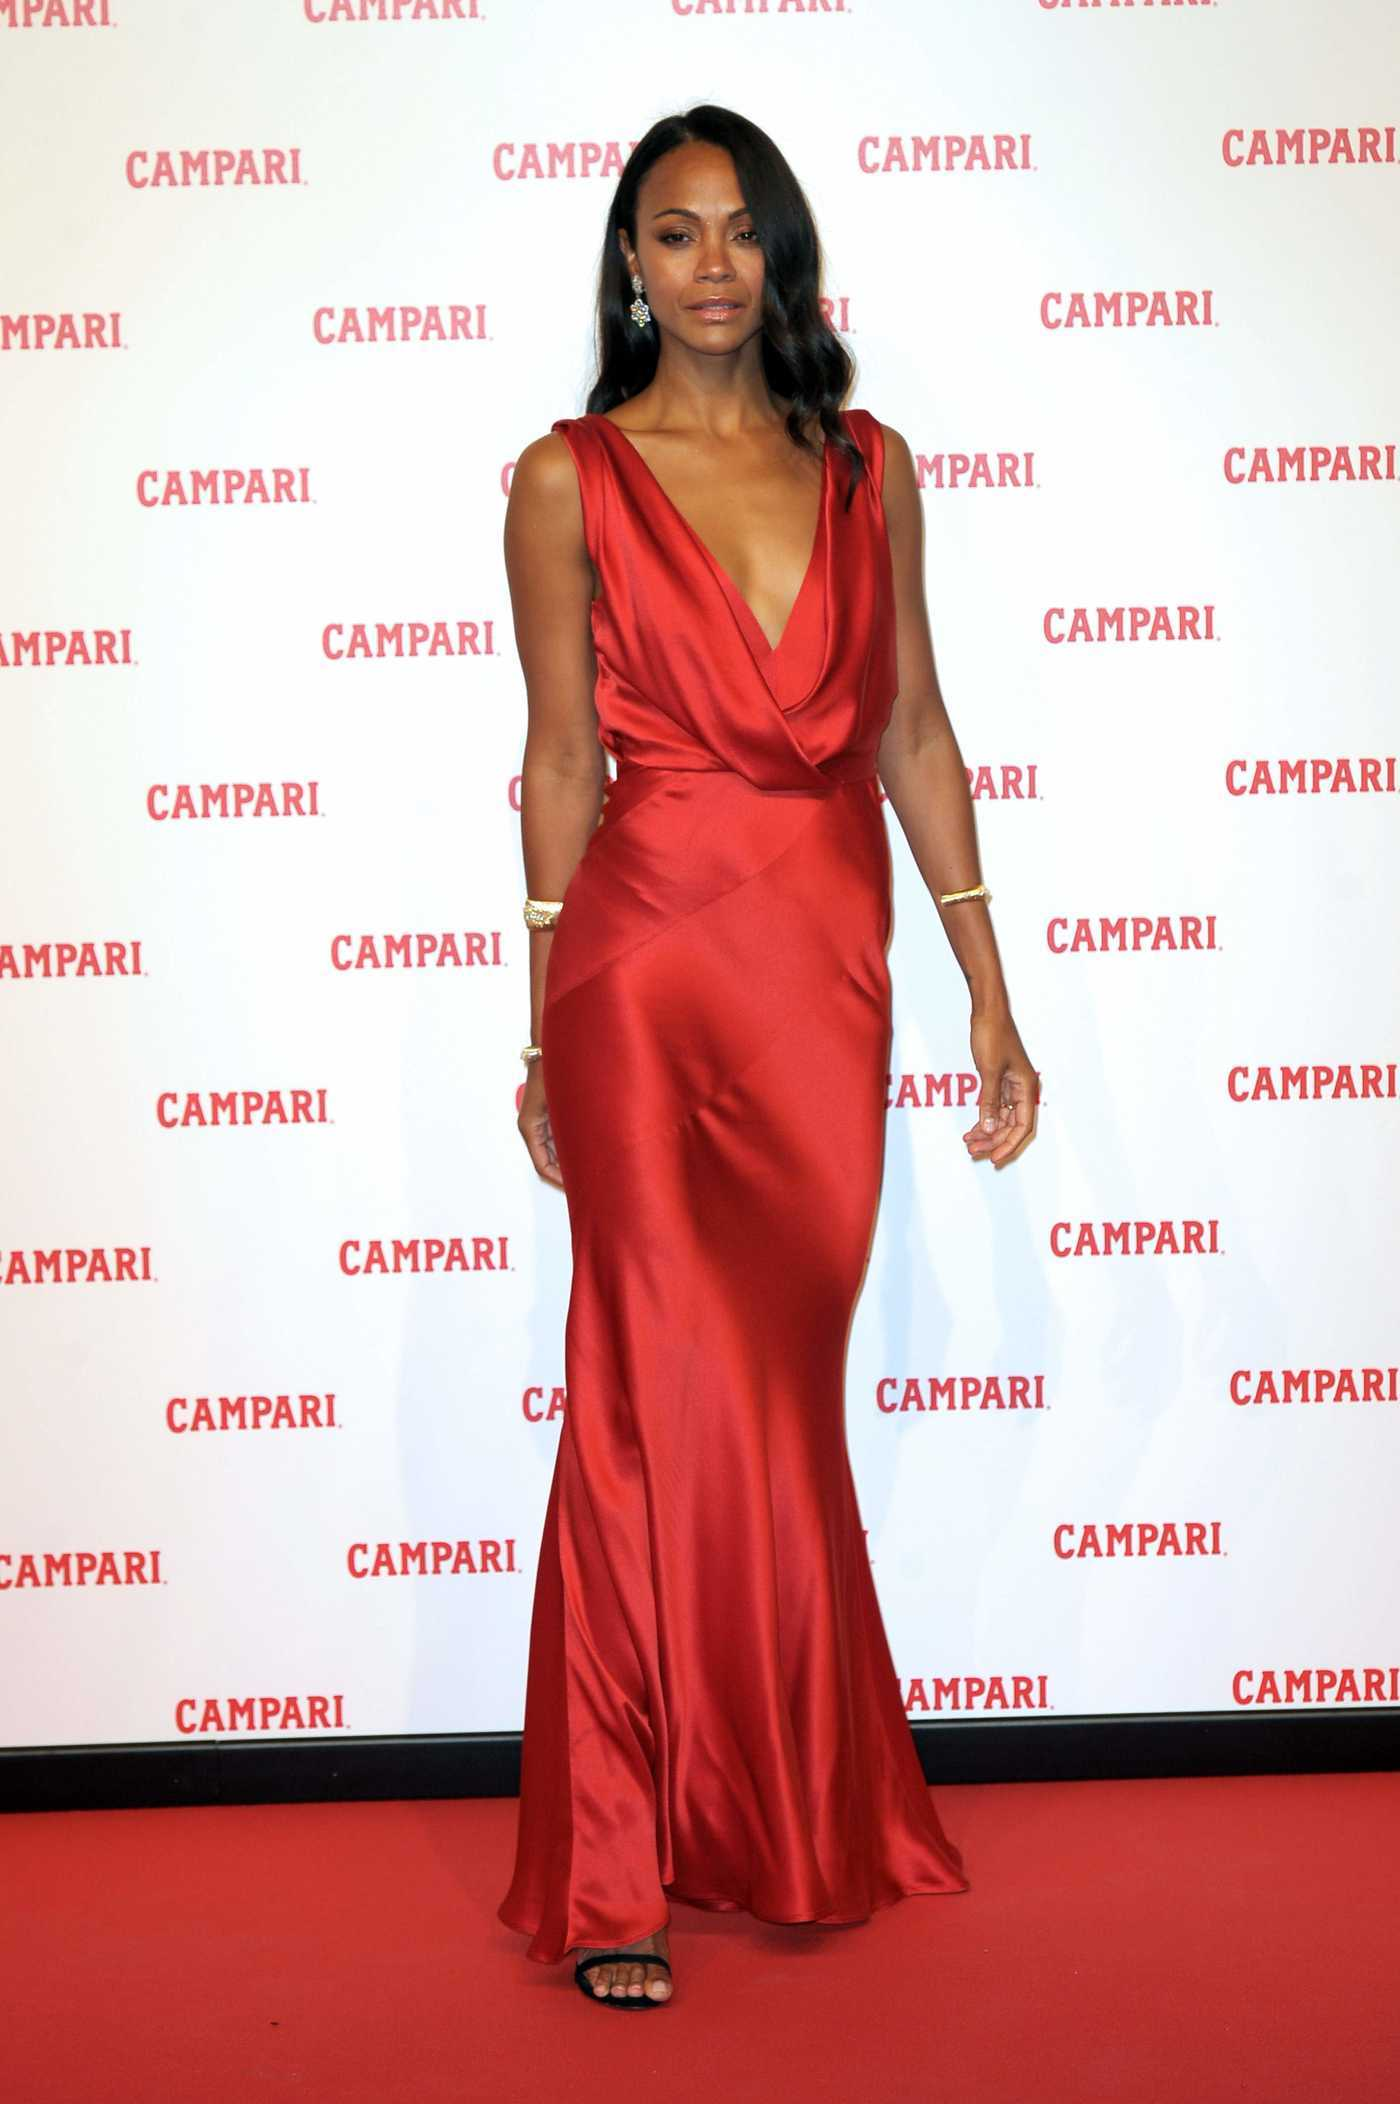 Zoe Saldana Attends Campari Red Diaries Photocall in Milan 01/30/2018